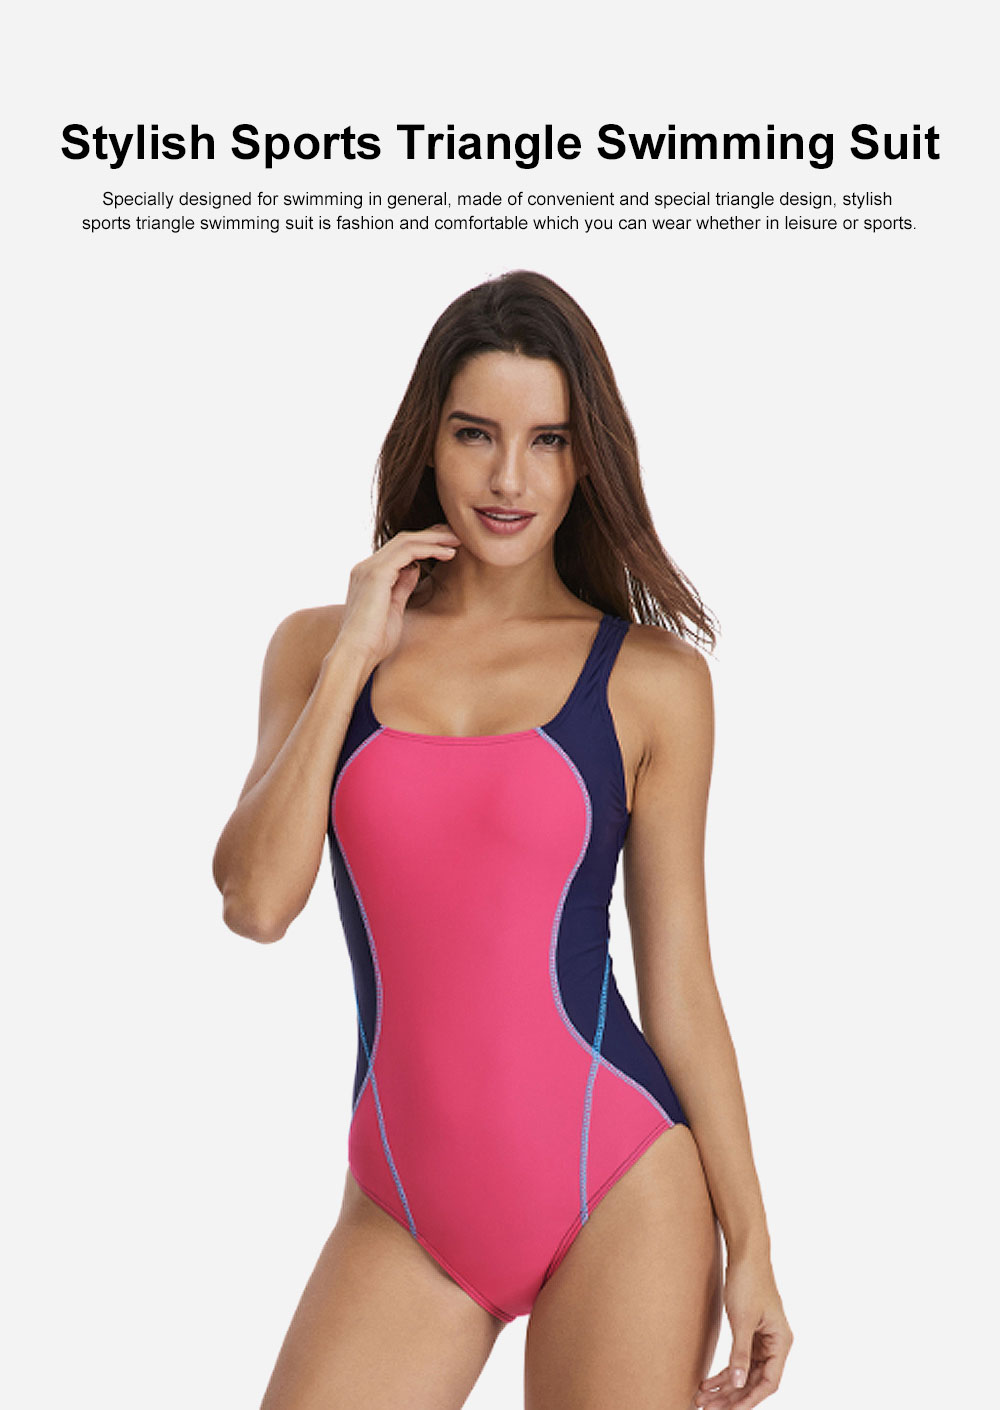 Europe & America Sport Swimming Suit Professional Competitive & Comfortable Bathing Suit, Stylish Sports Triangle Swimwear Suit Bikini 0